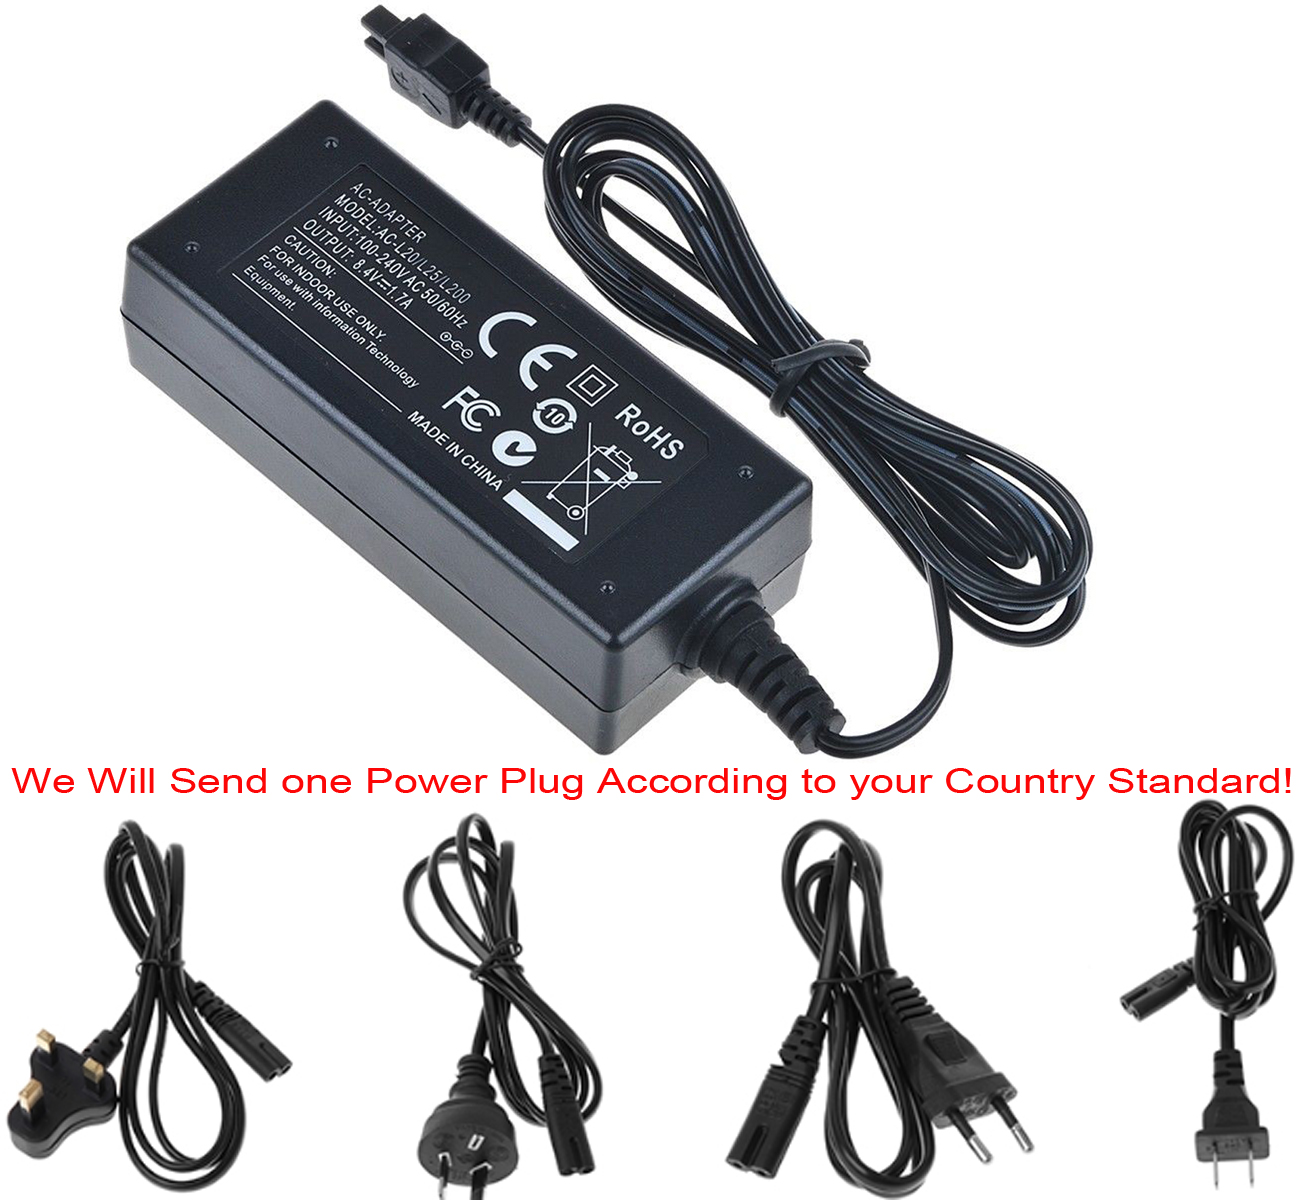 AC Adapter Charger for <font><b>Sony</b></font> HDR-CX100, <font><b>CX110</b></font>, CX130, CX150, CX160, CX190, CX200, CX210, CX220, CX230, CX260V Handycam Camcorder image